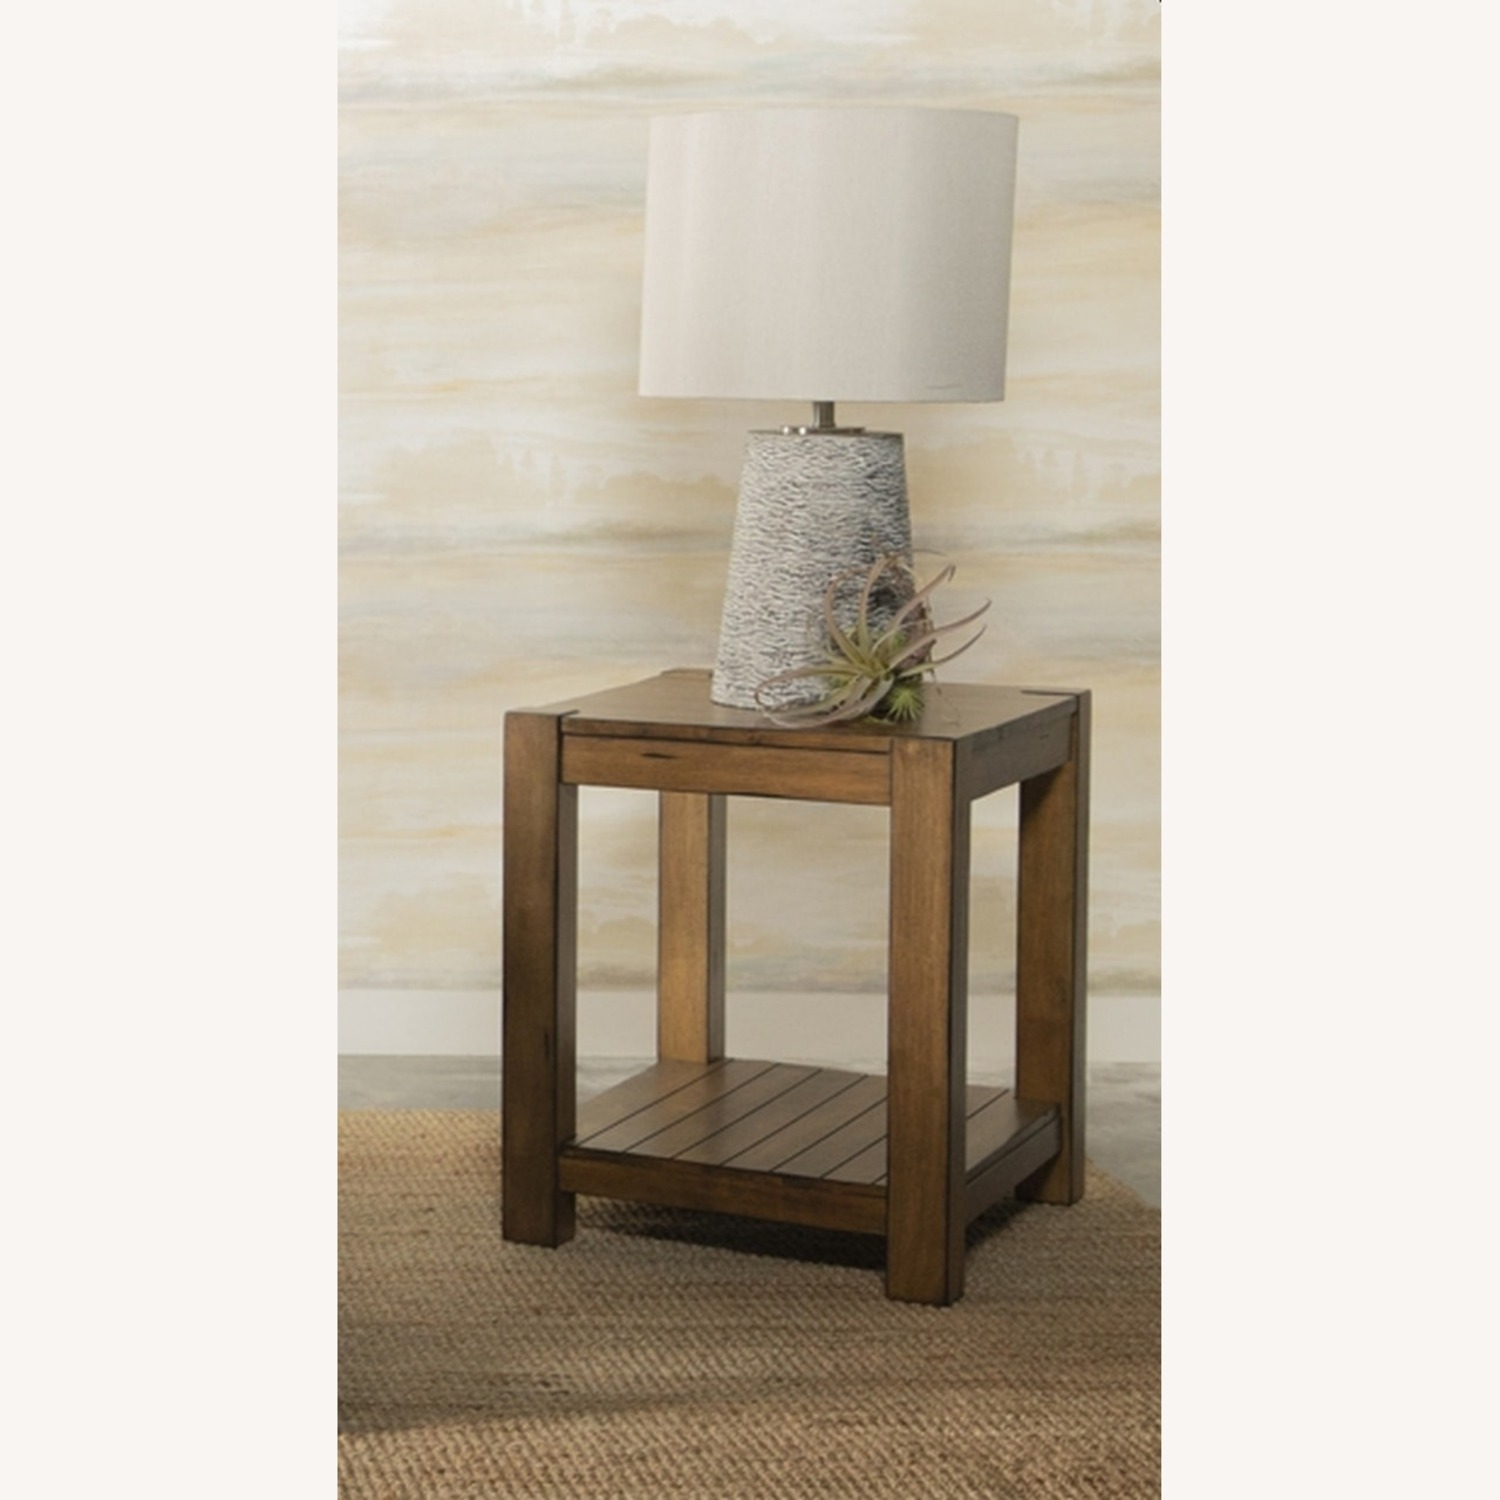 End Table In Solid Wood Rustic Brown Finish - image-2